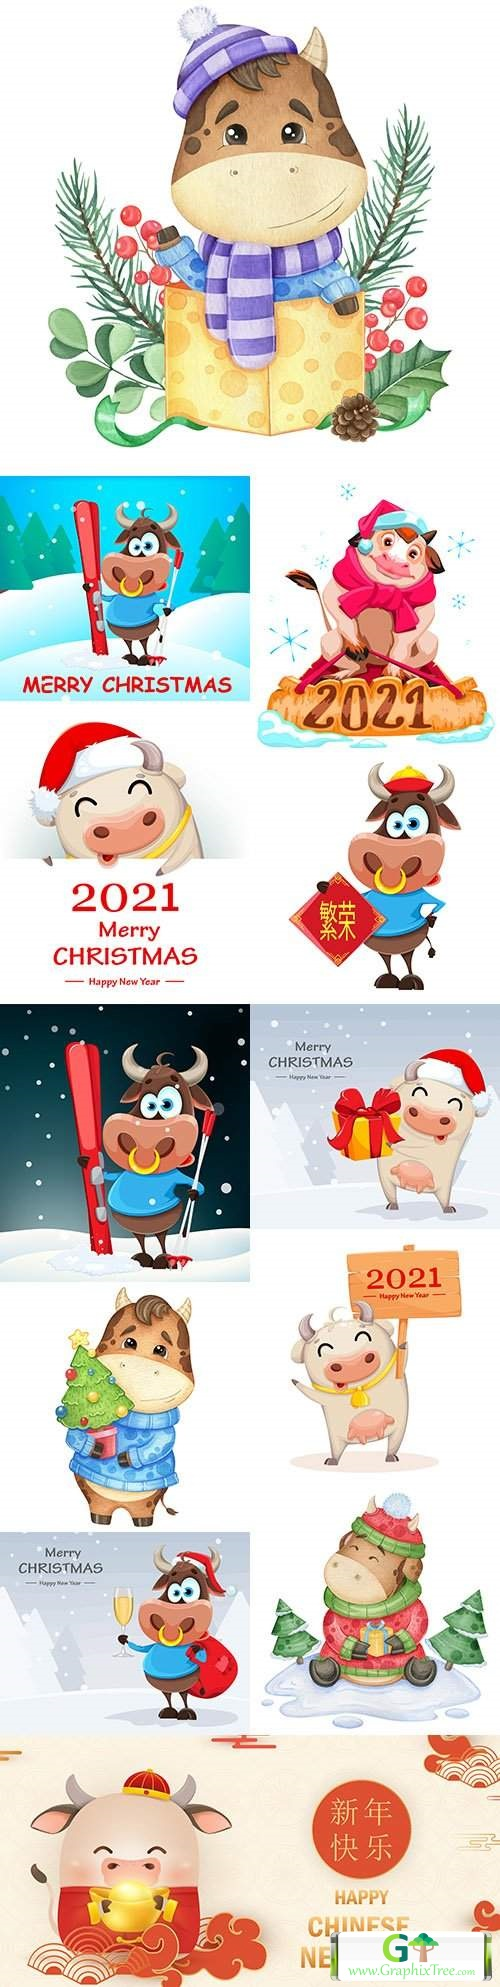 Bull Chinese calendar symbol 2021 cartoon illustration